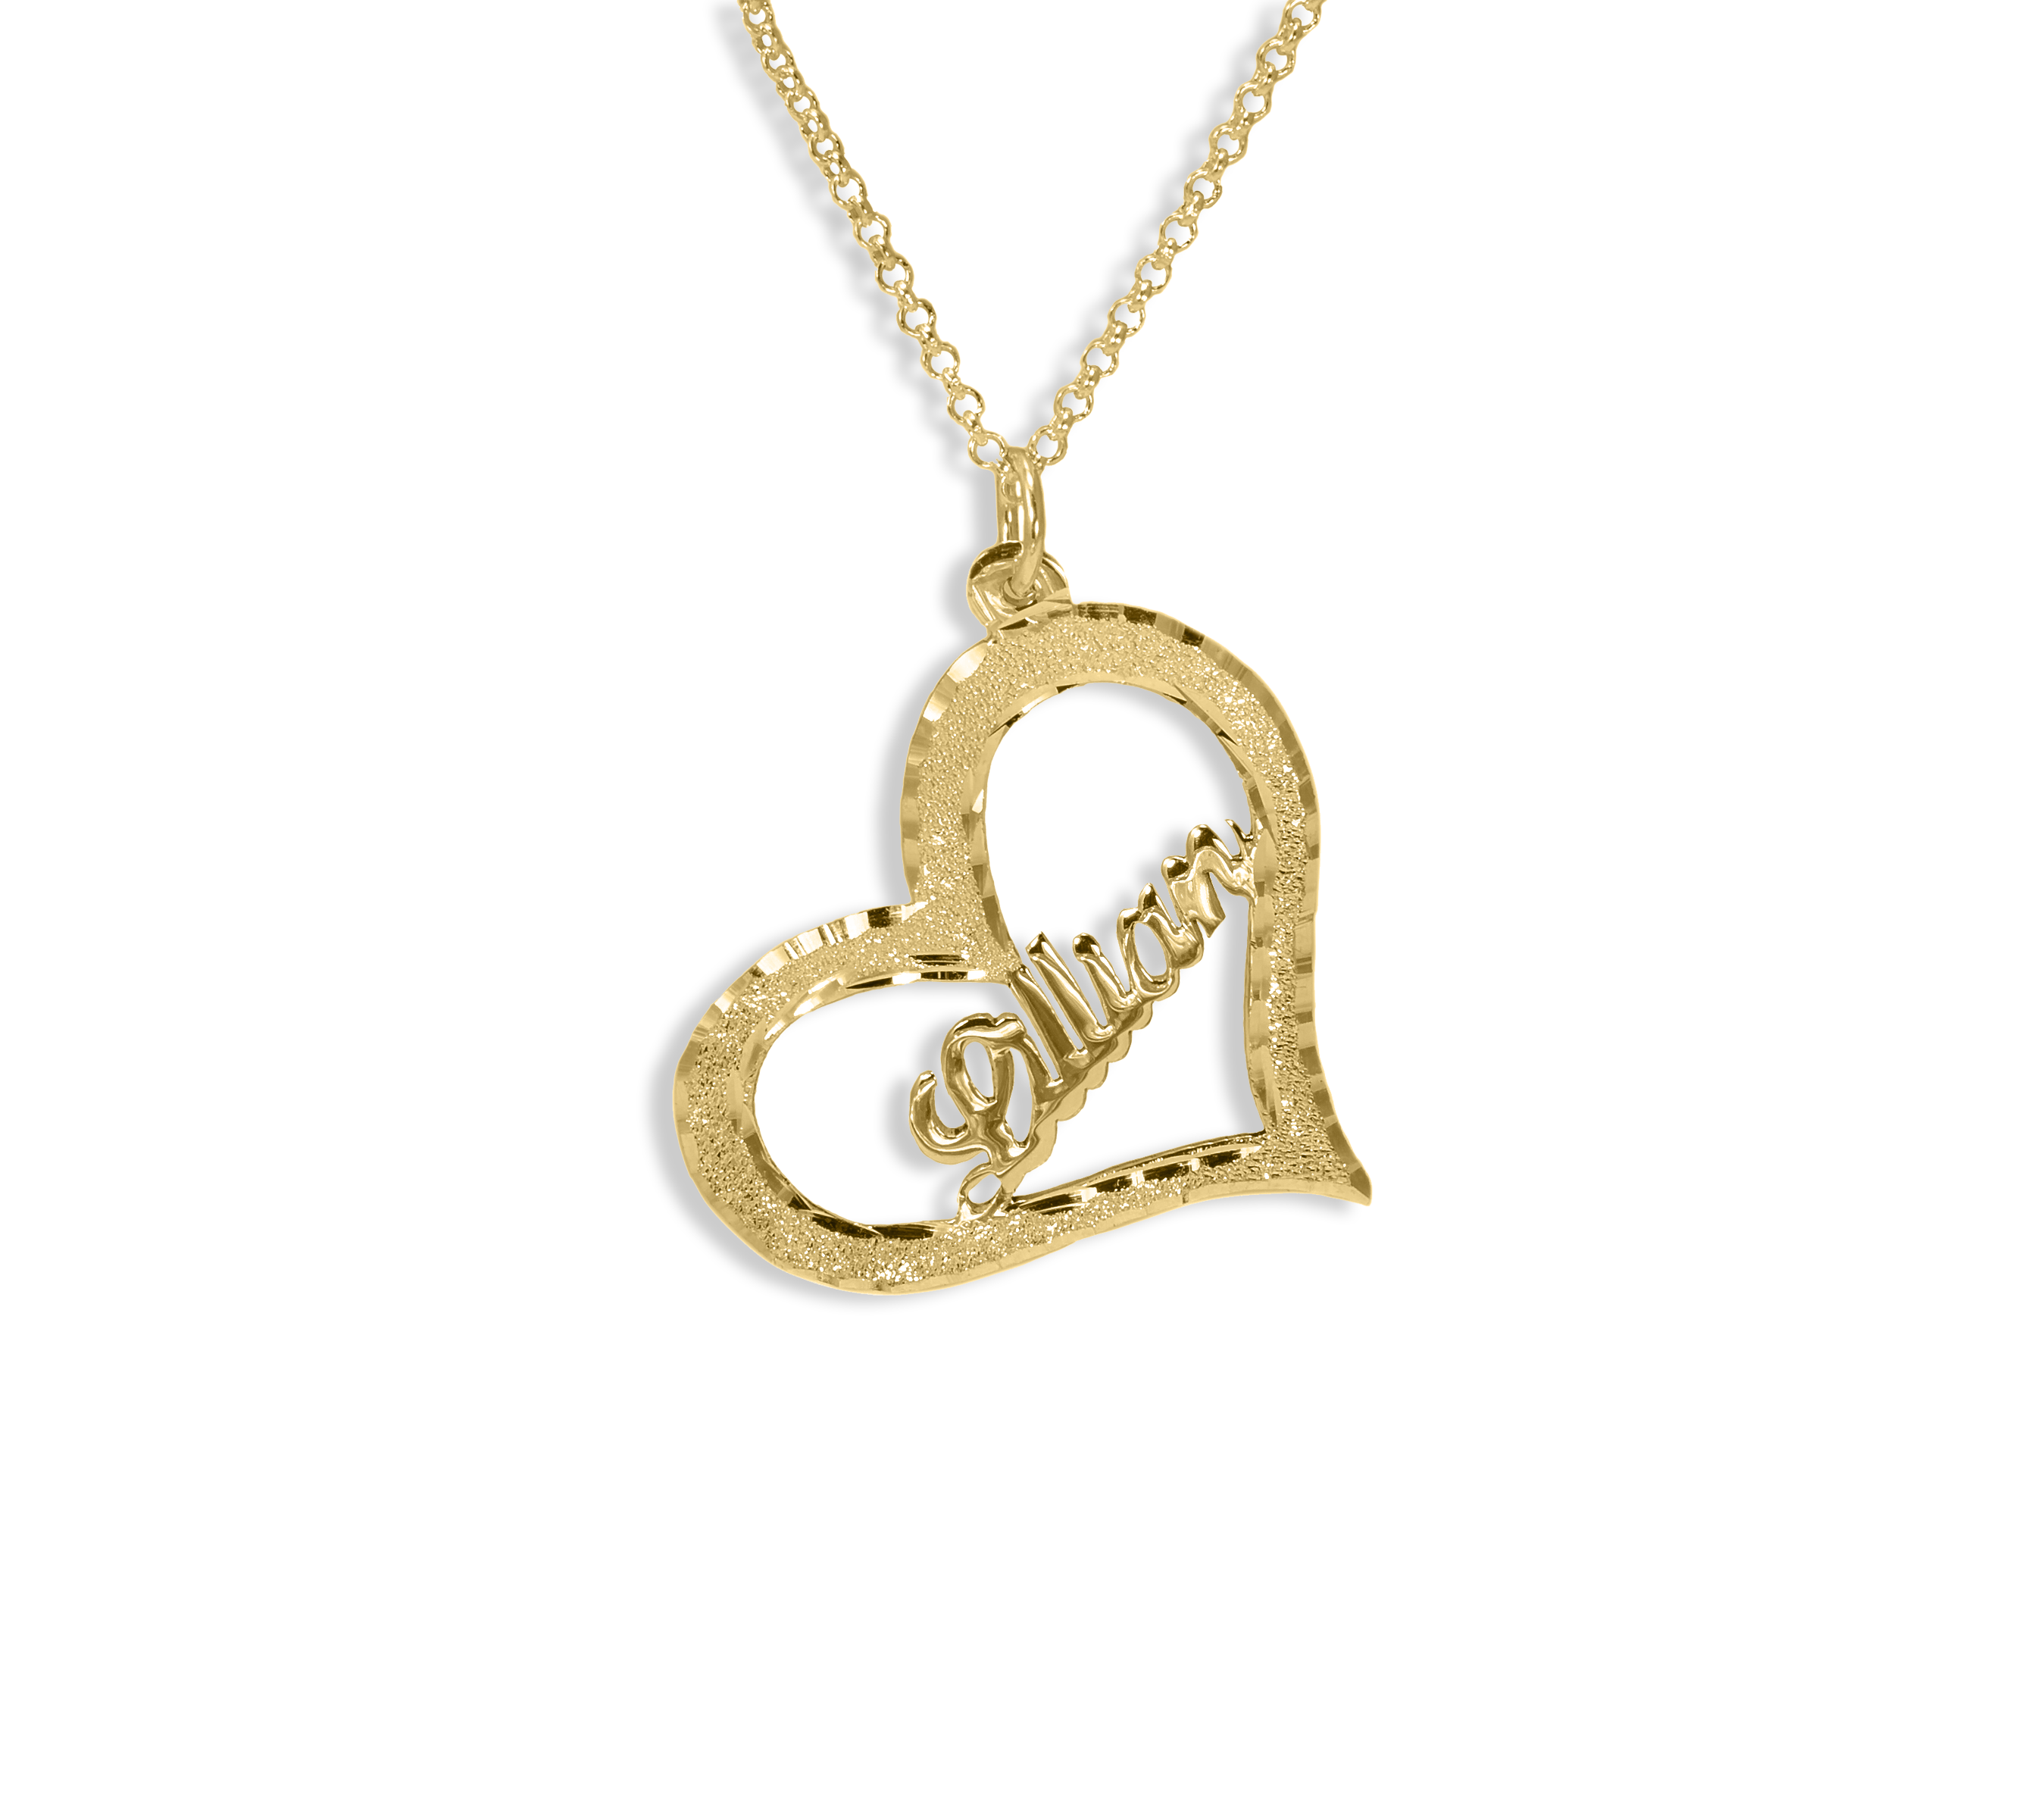 d6f98eb7c96bb Personalized 14K Solid Gold Heart Name Necklace